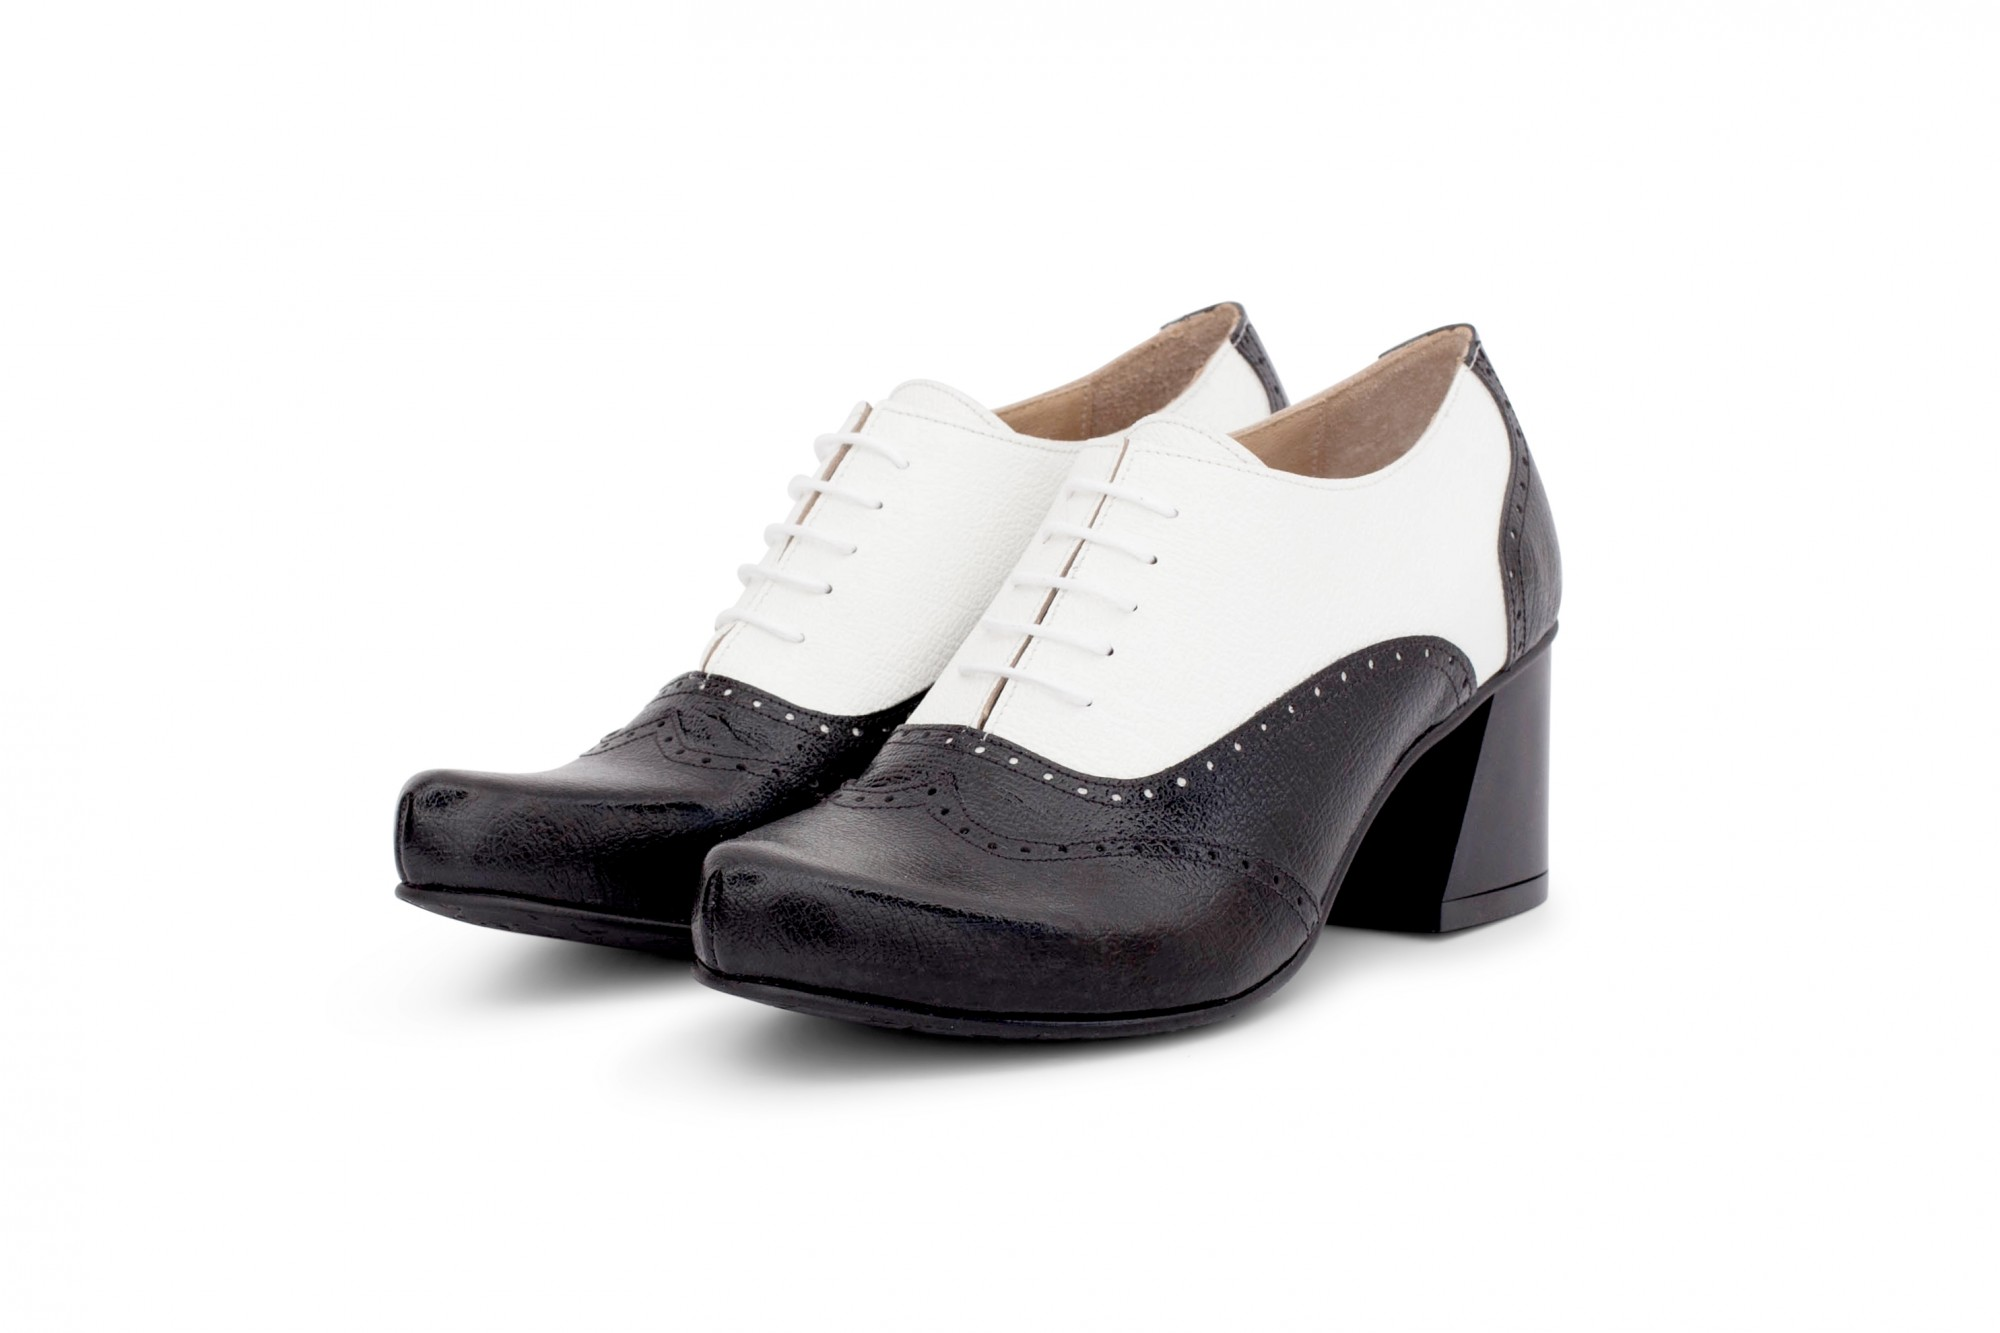 723b610e07 Oxford heels black and white. Women's oxford shoes in black and white  leather